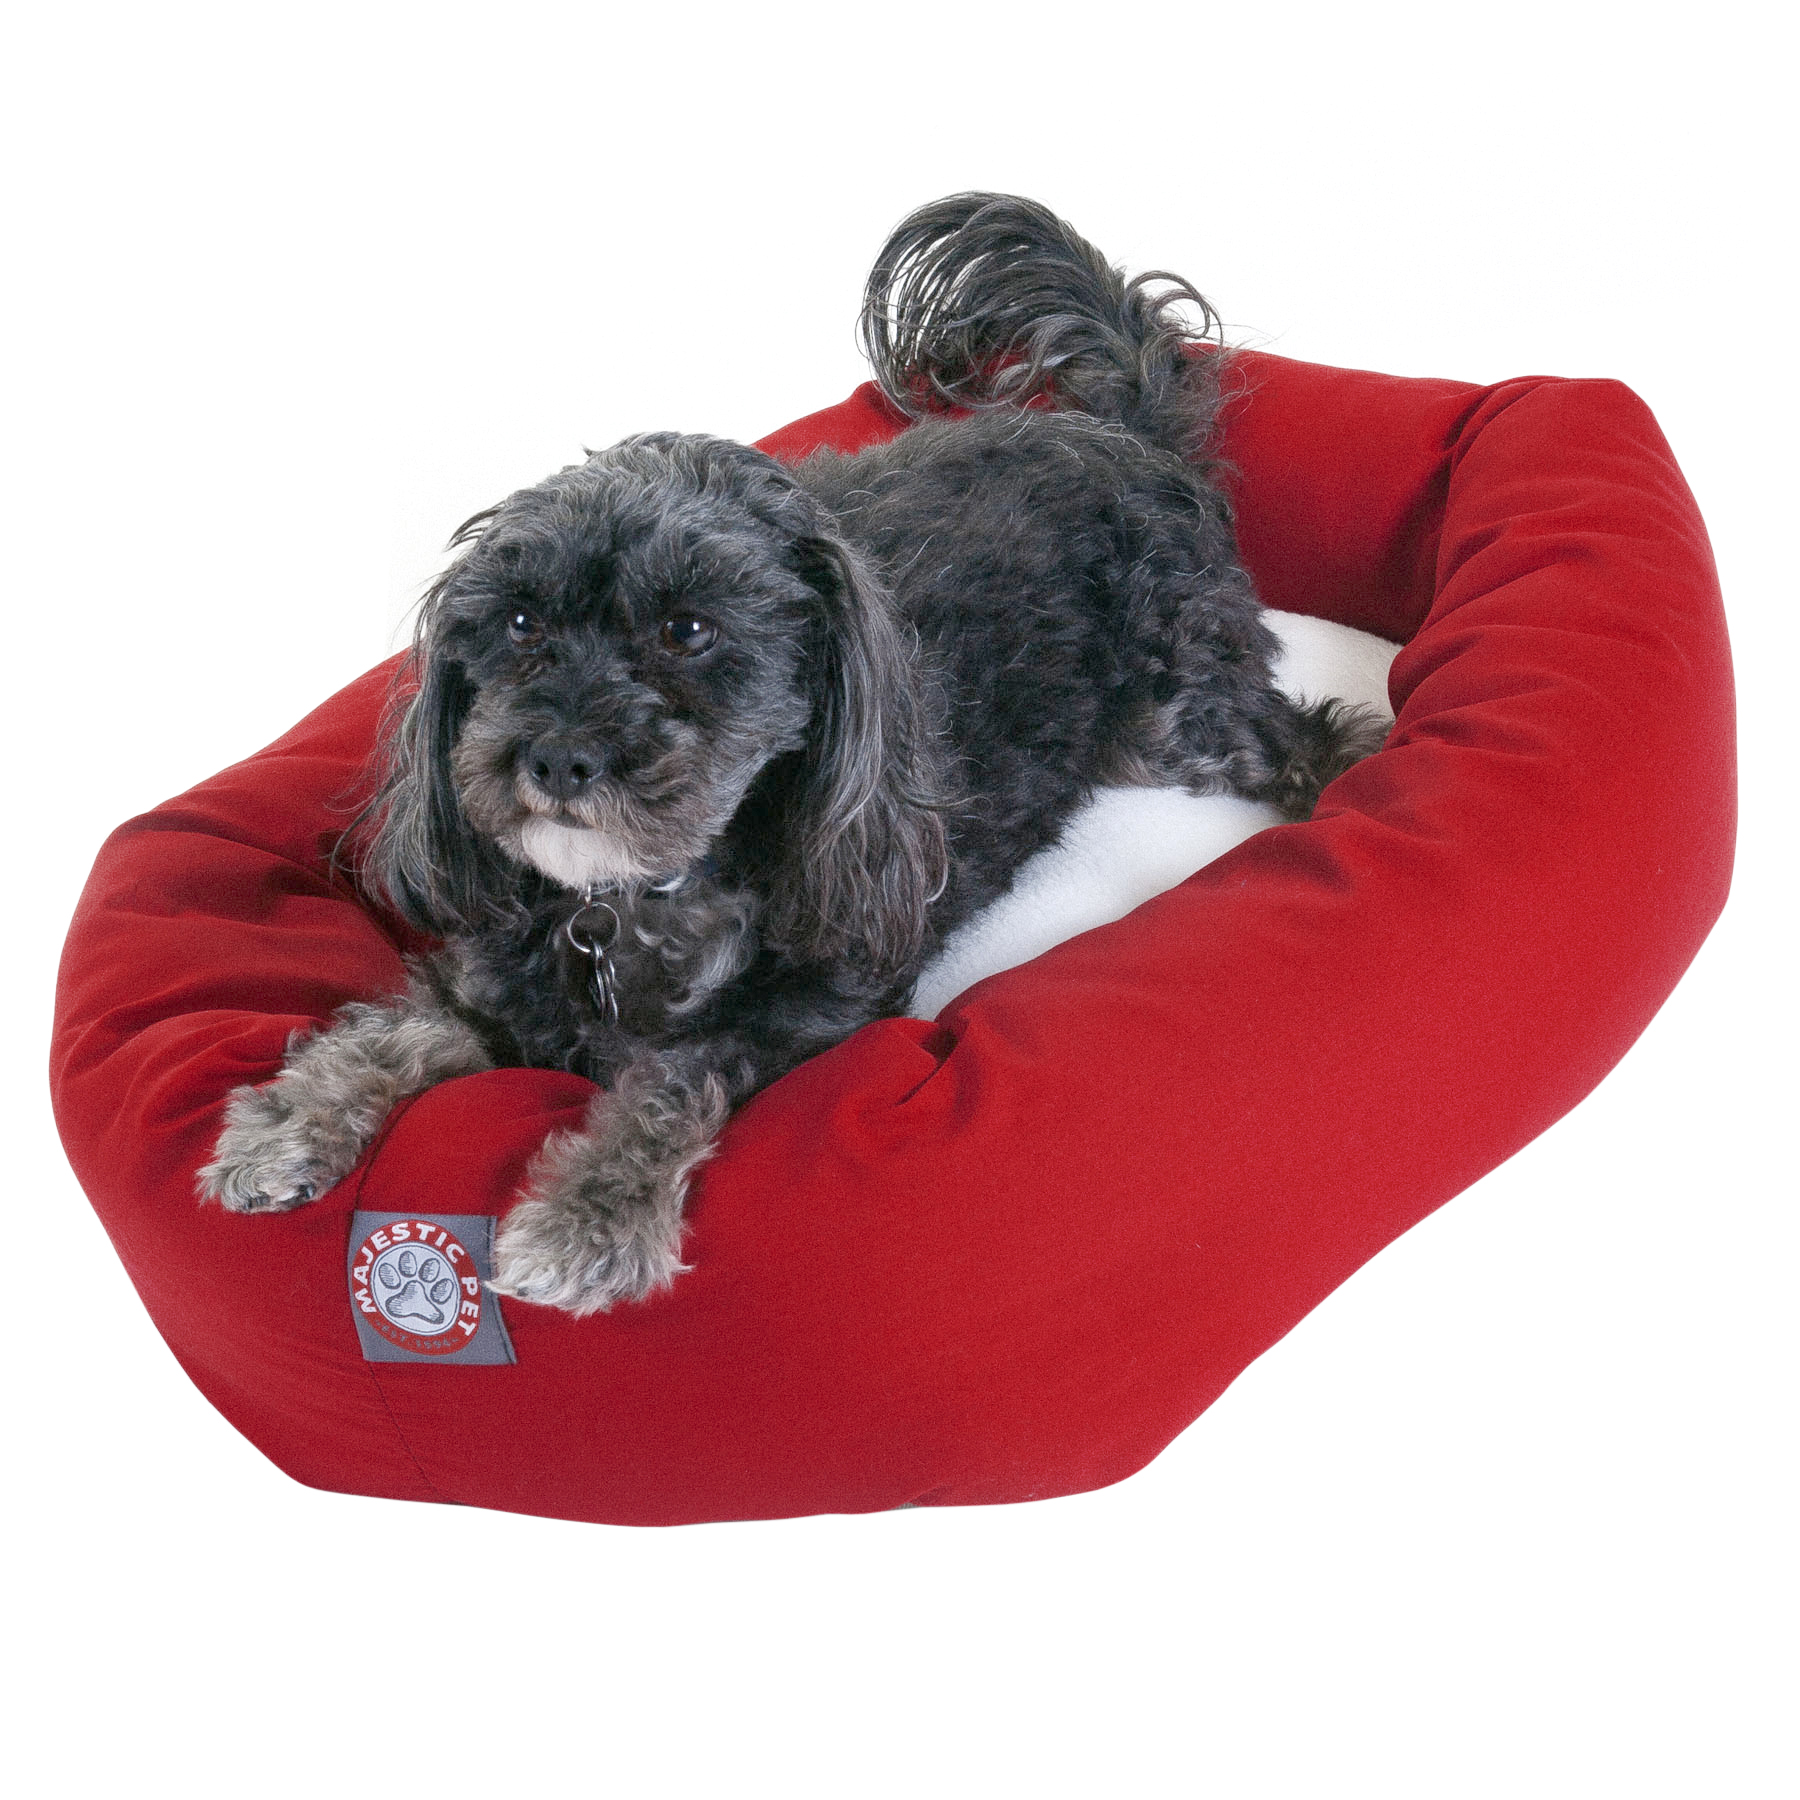 Majestic Pet Poly/Cotton & Sherpa Bagel Dog Bed Machine Washable Red Small 24″ x 19″ x 7″ (Walmart)